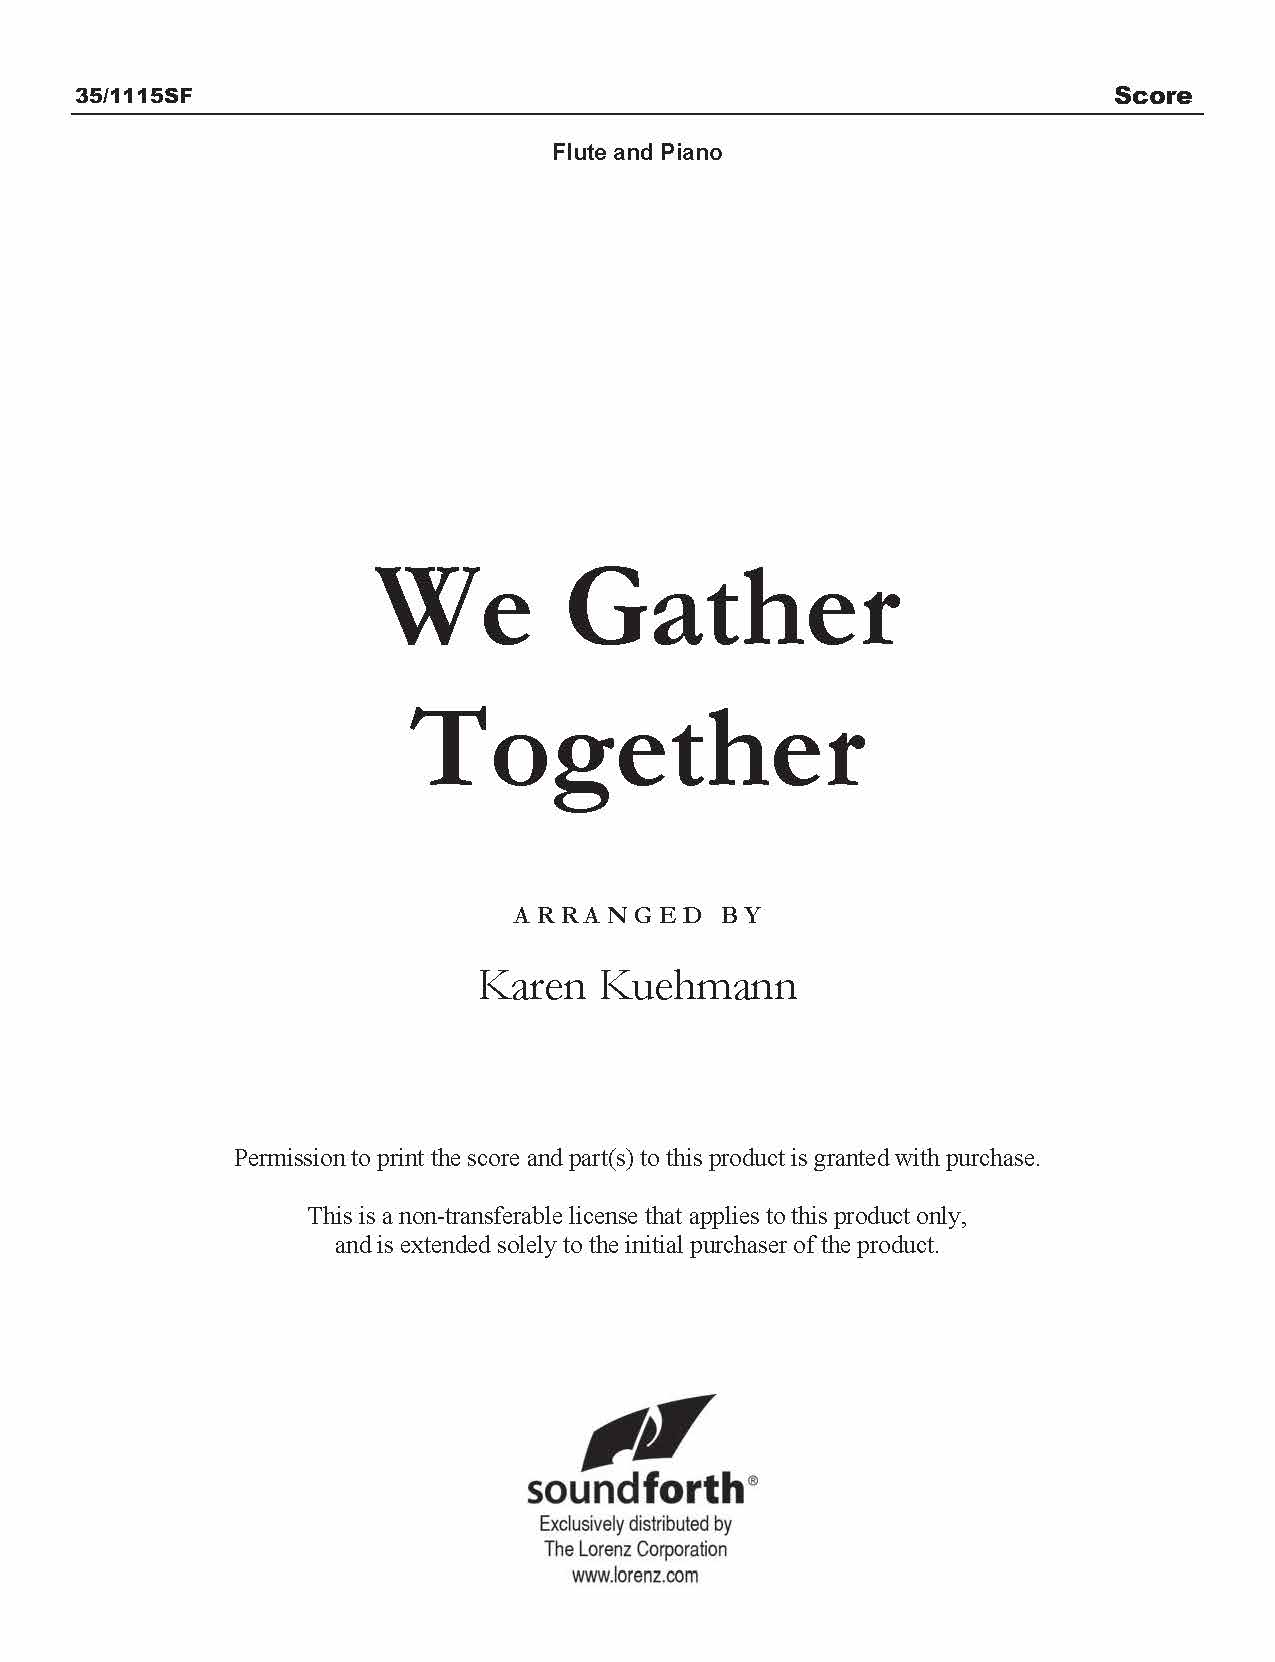 We Gather Together (Digital Delivery)